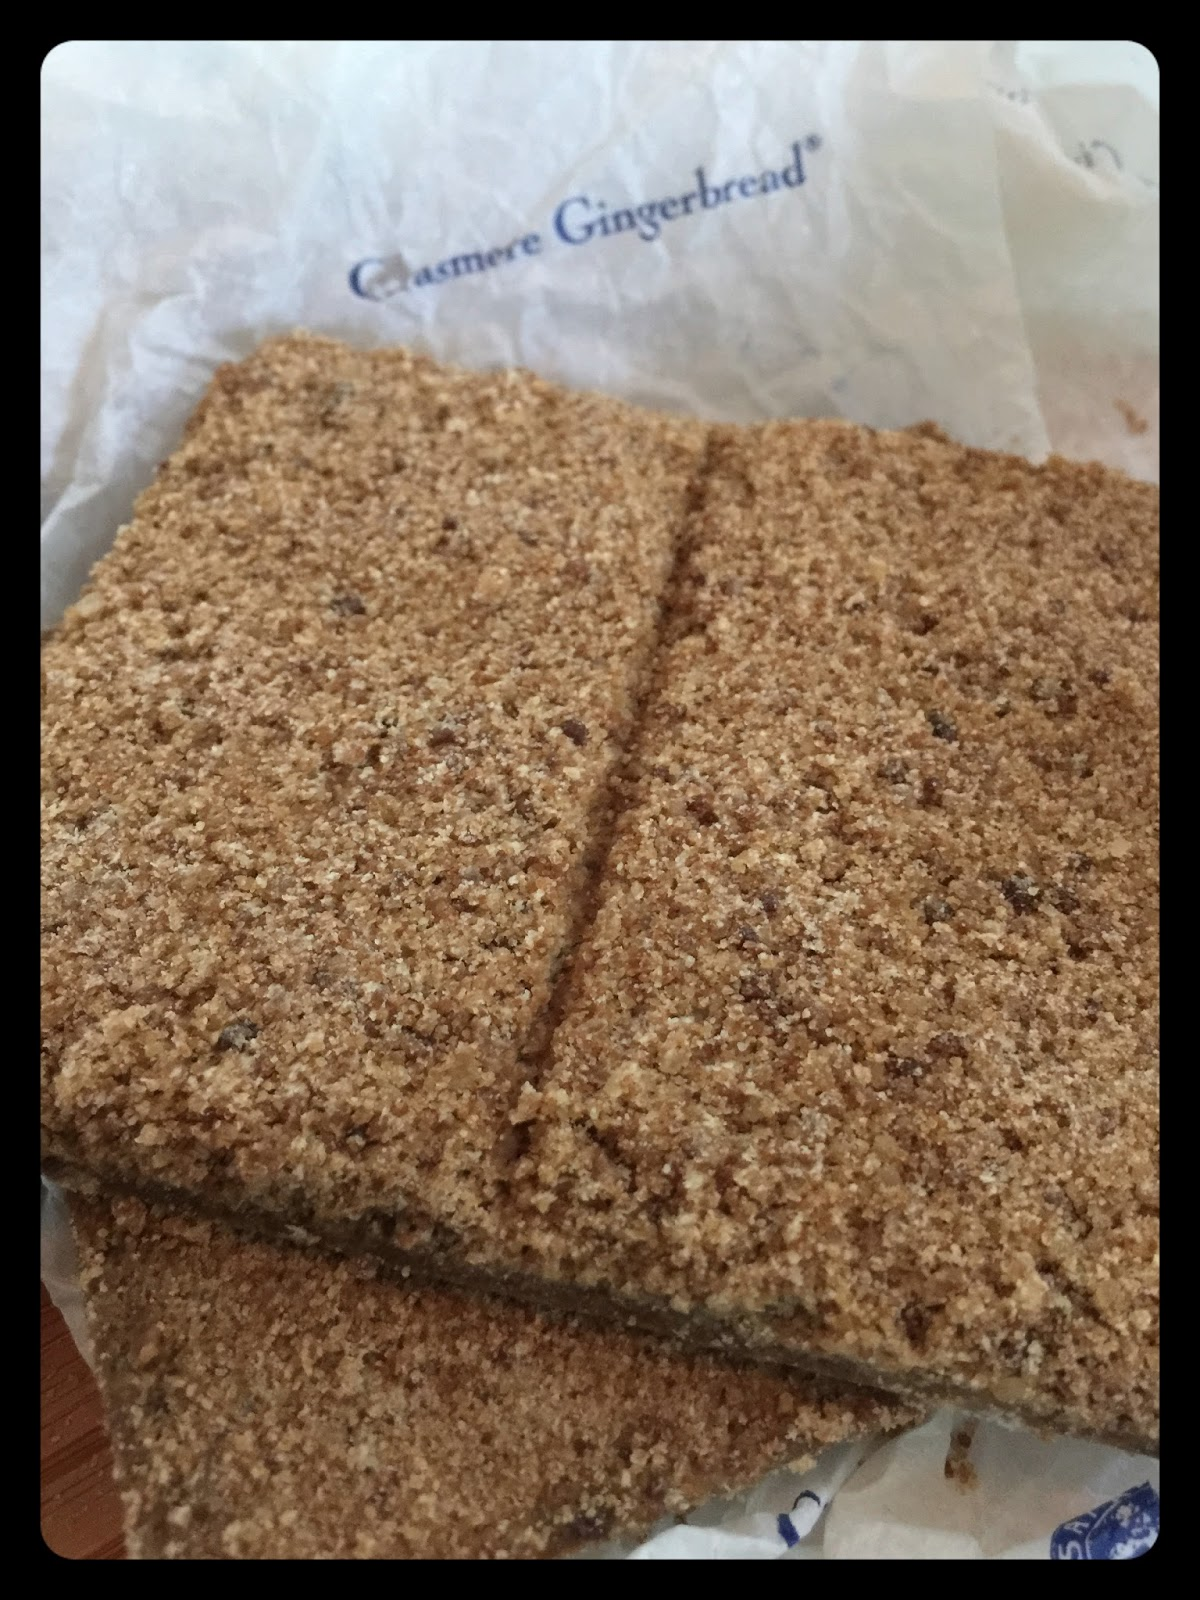 A Taste Of History With Joyce White Grasmere Gingerbread